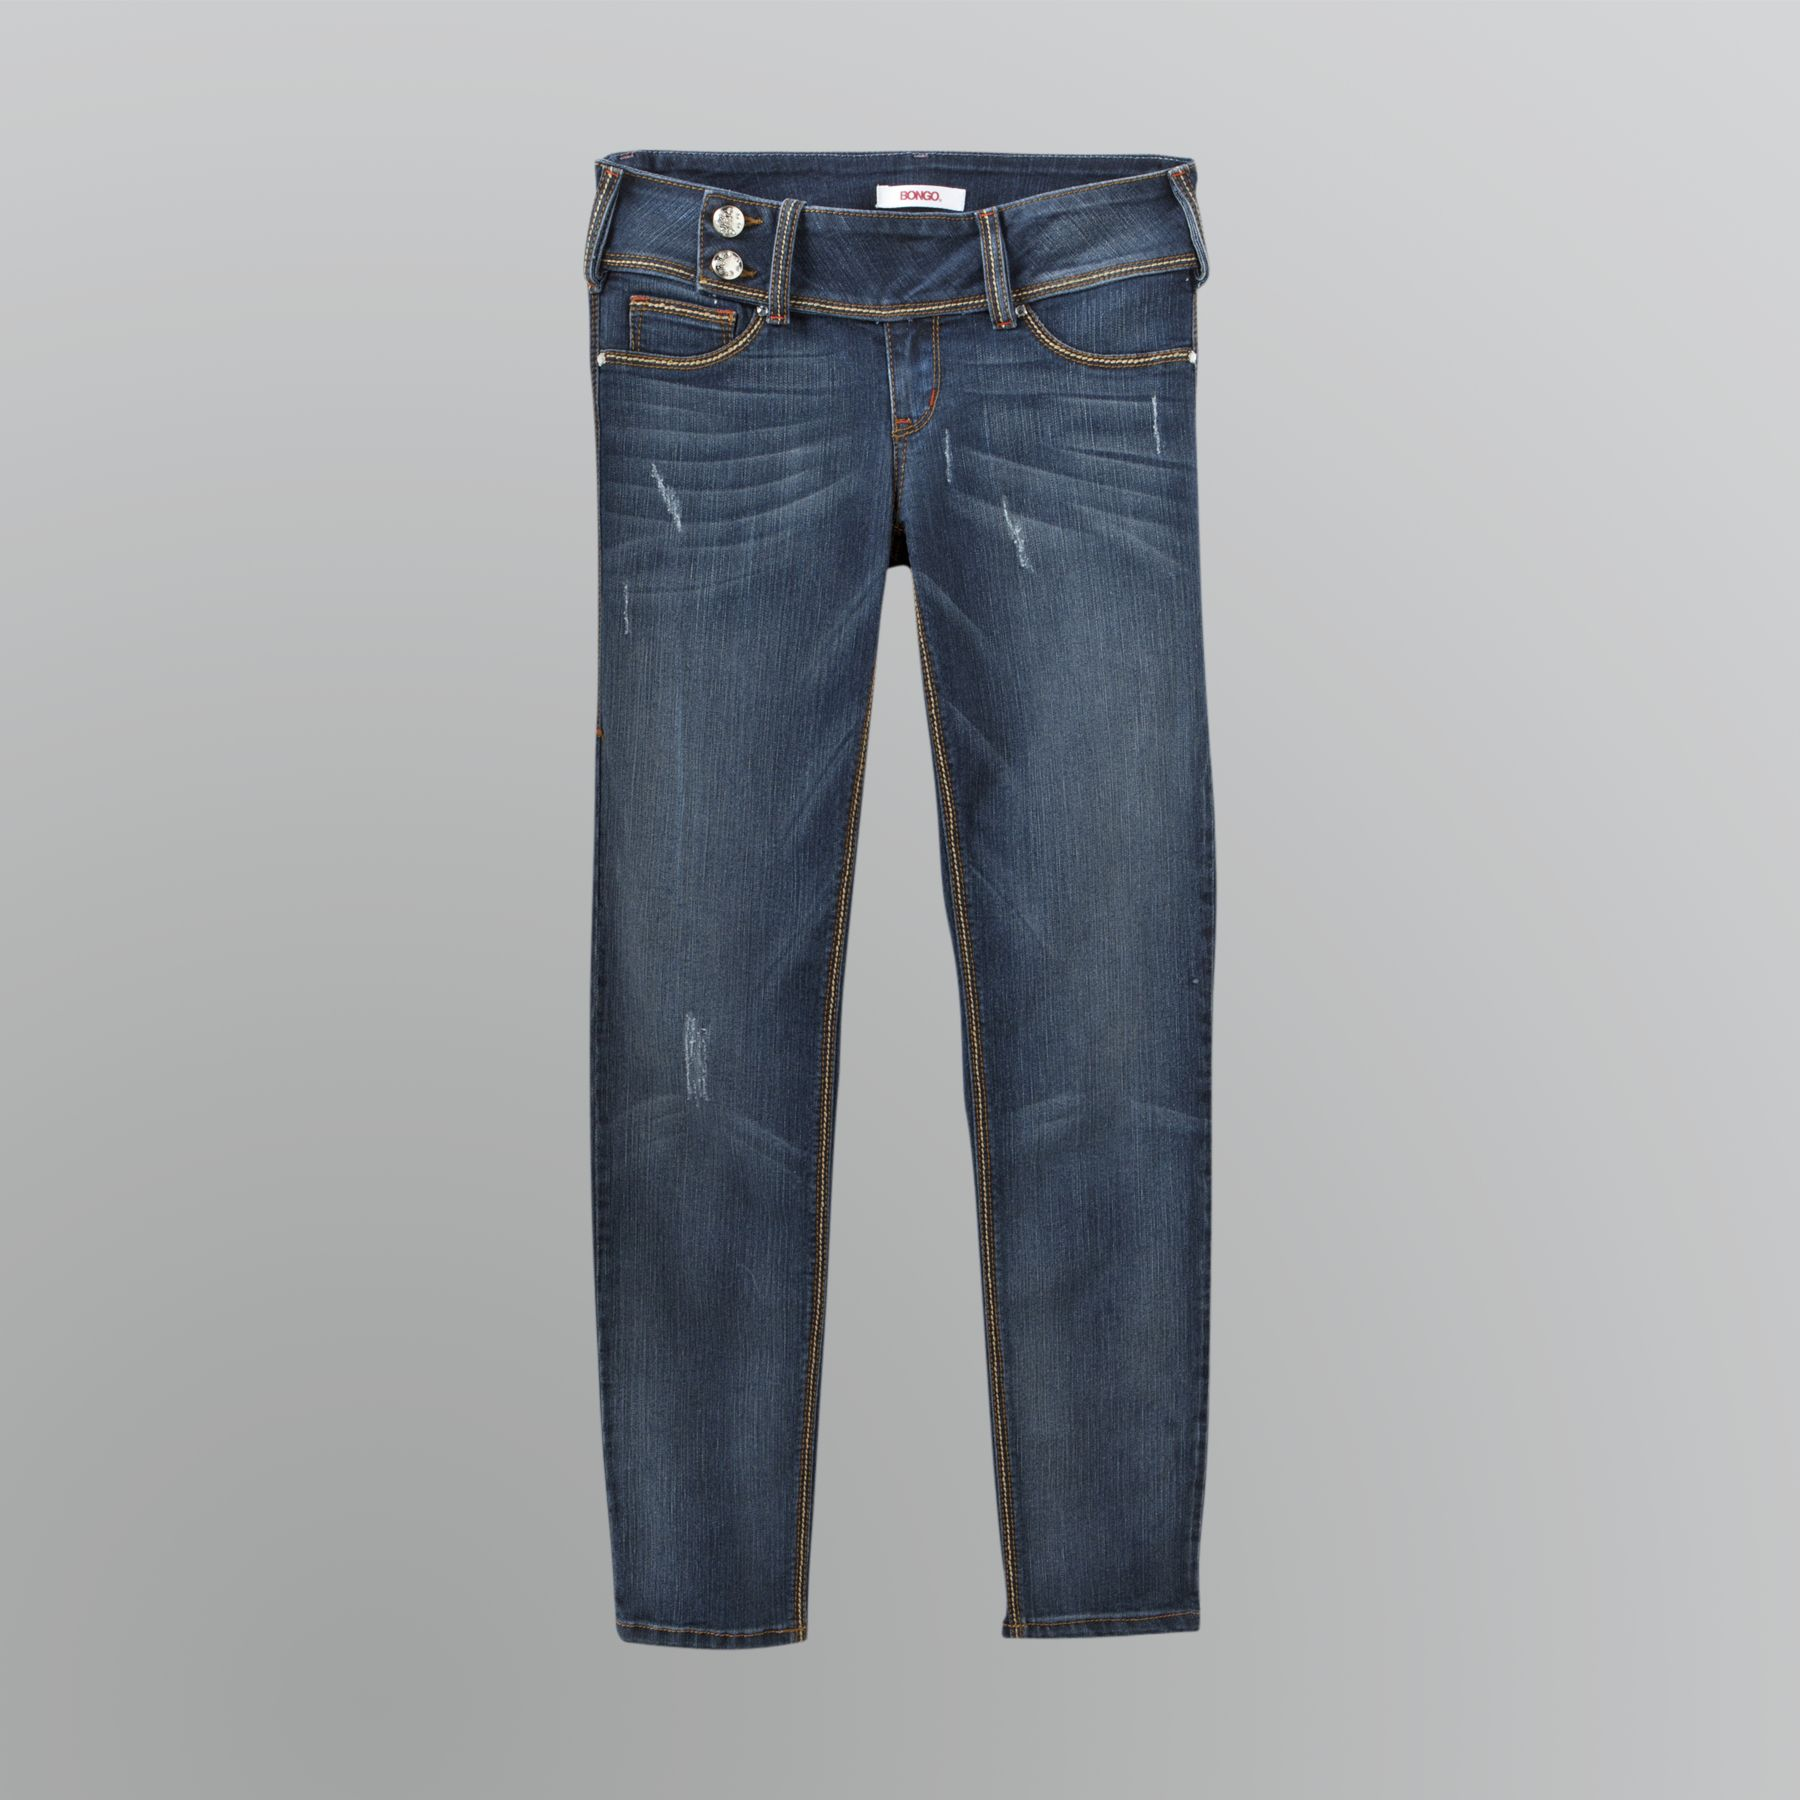 Bongo Junior's Button Tab Skinny Jeans at Sears.com